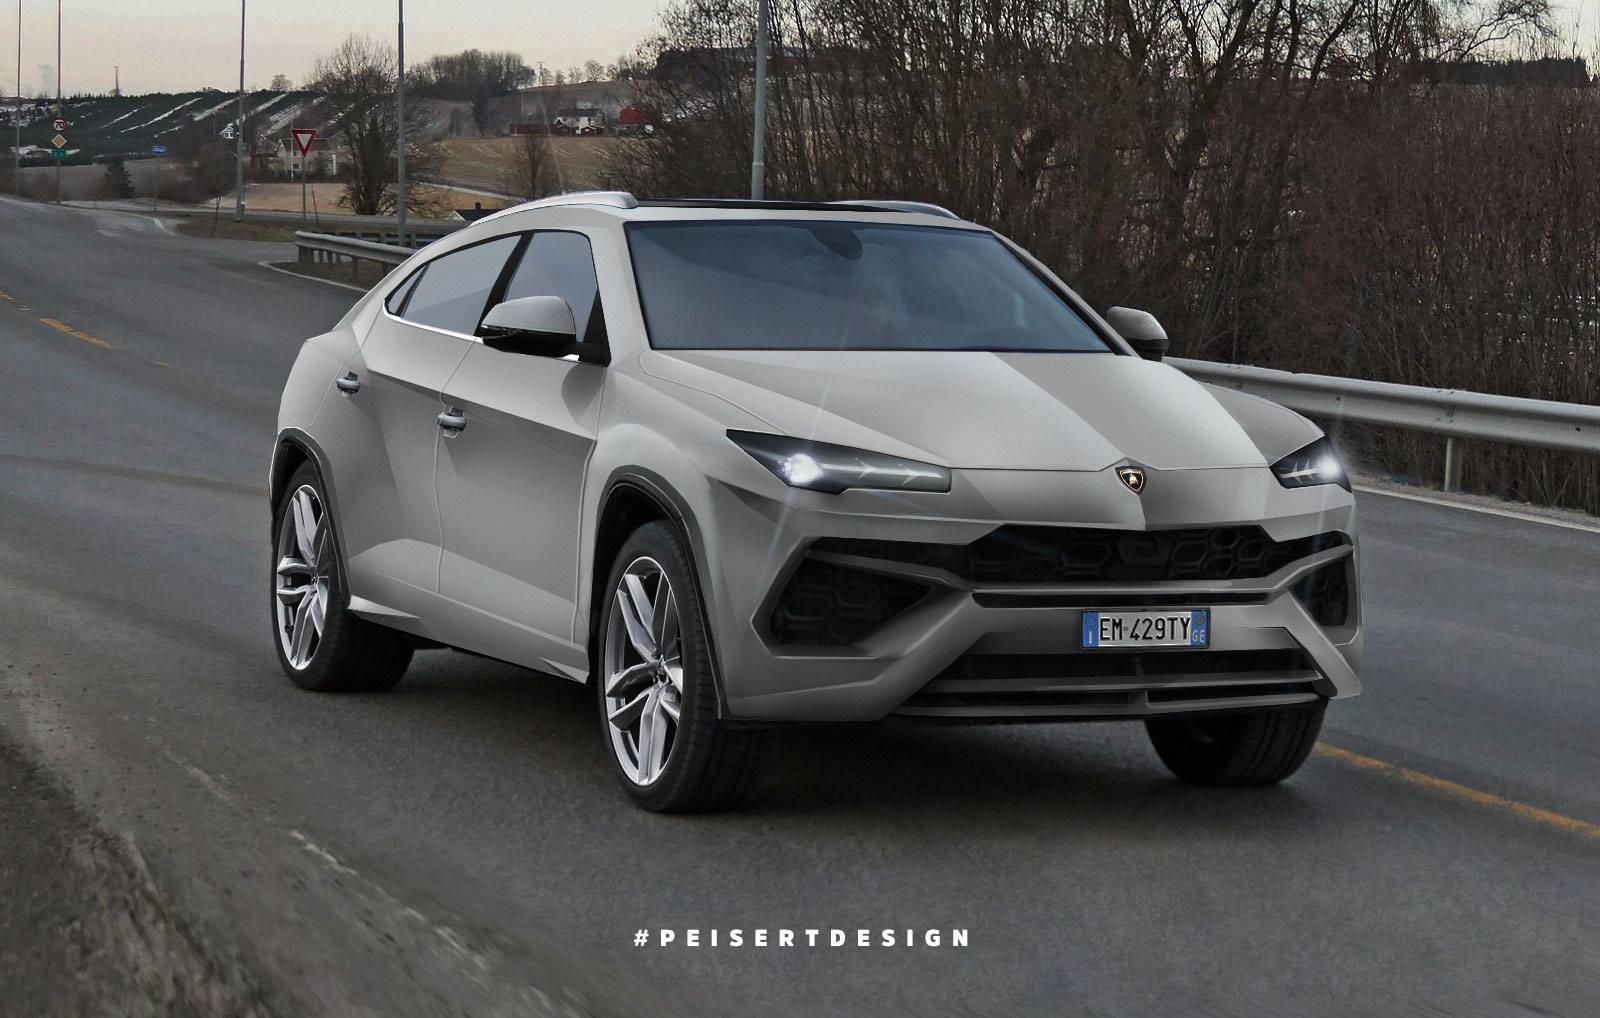 2017 Lambo Price >> 2018 Lamborghini Urus: This Is A Realistic Interpertation Of The Production Model | Carscoops